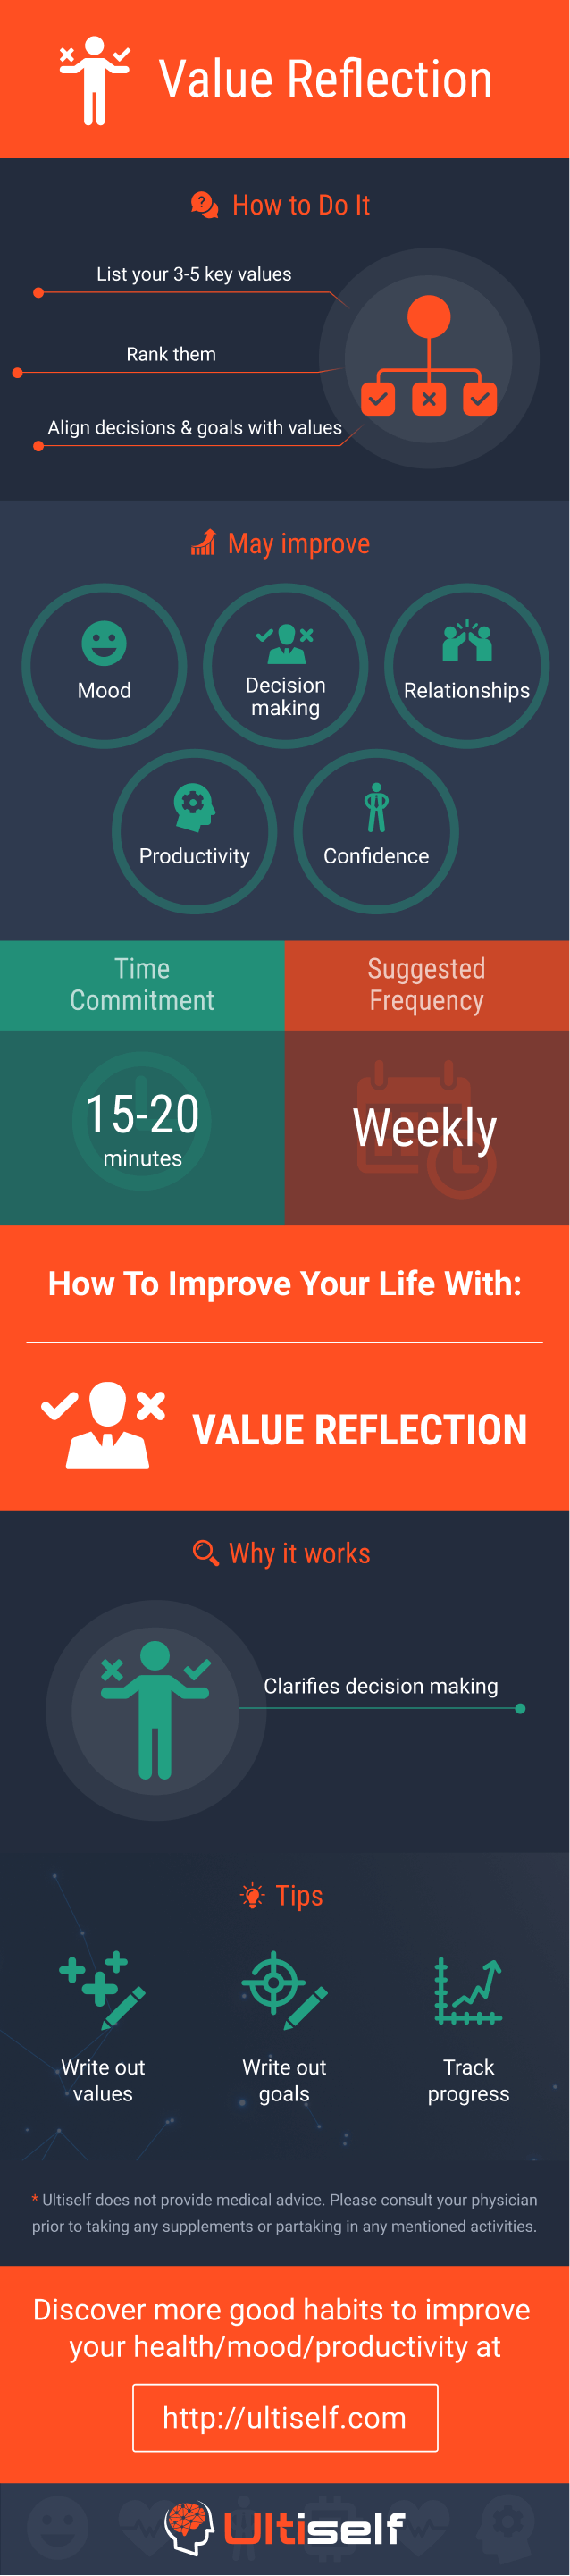 Value Reflection infographic